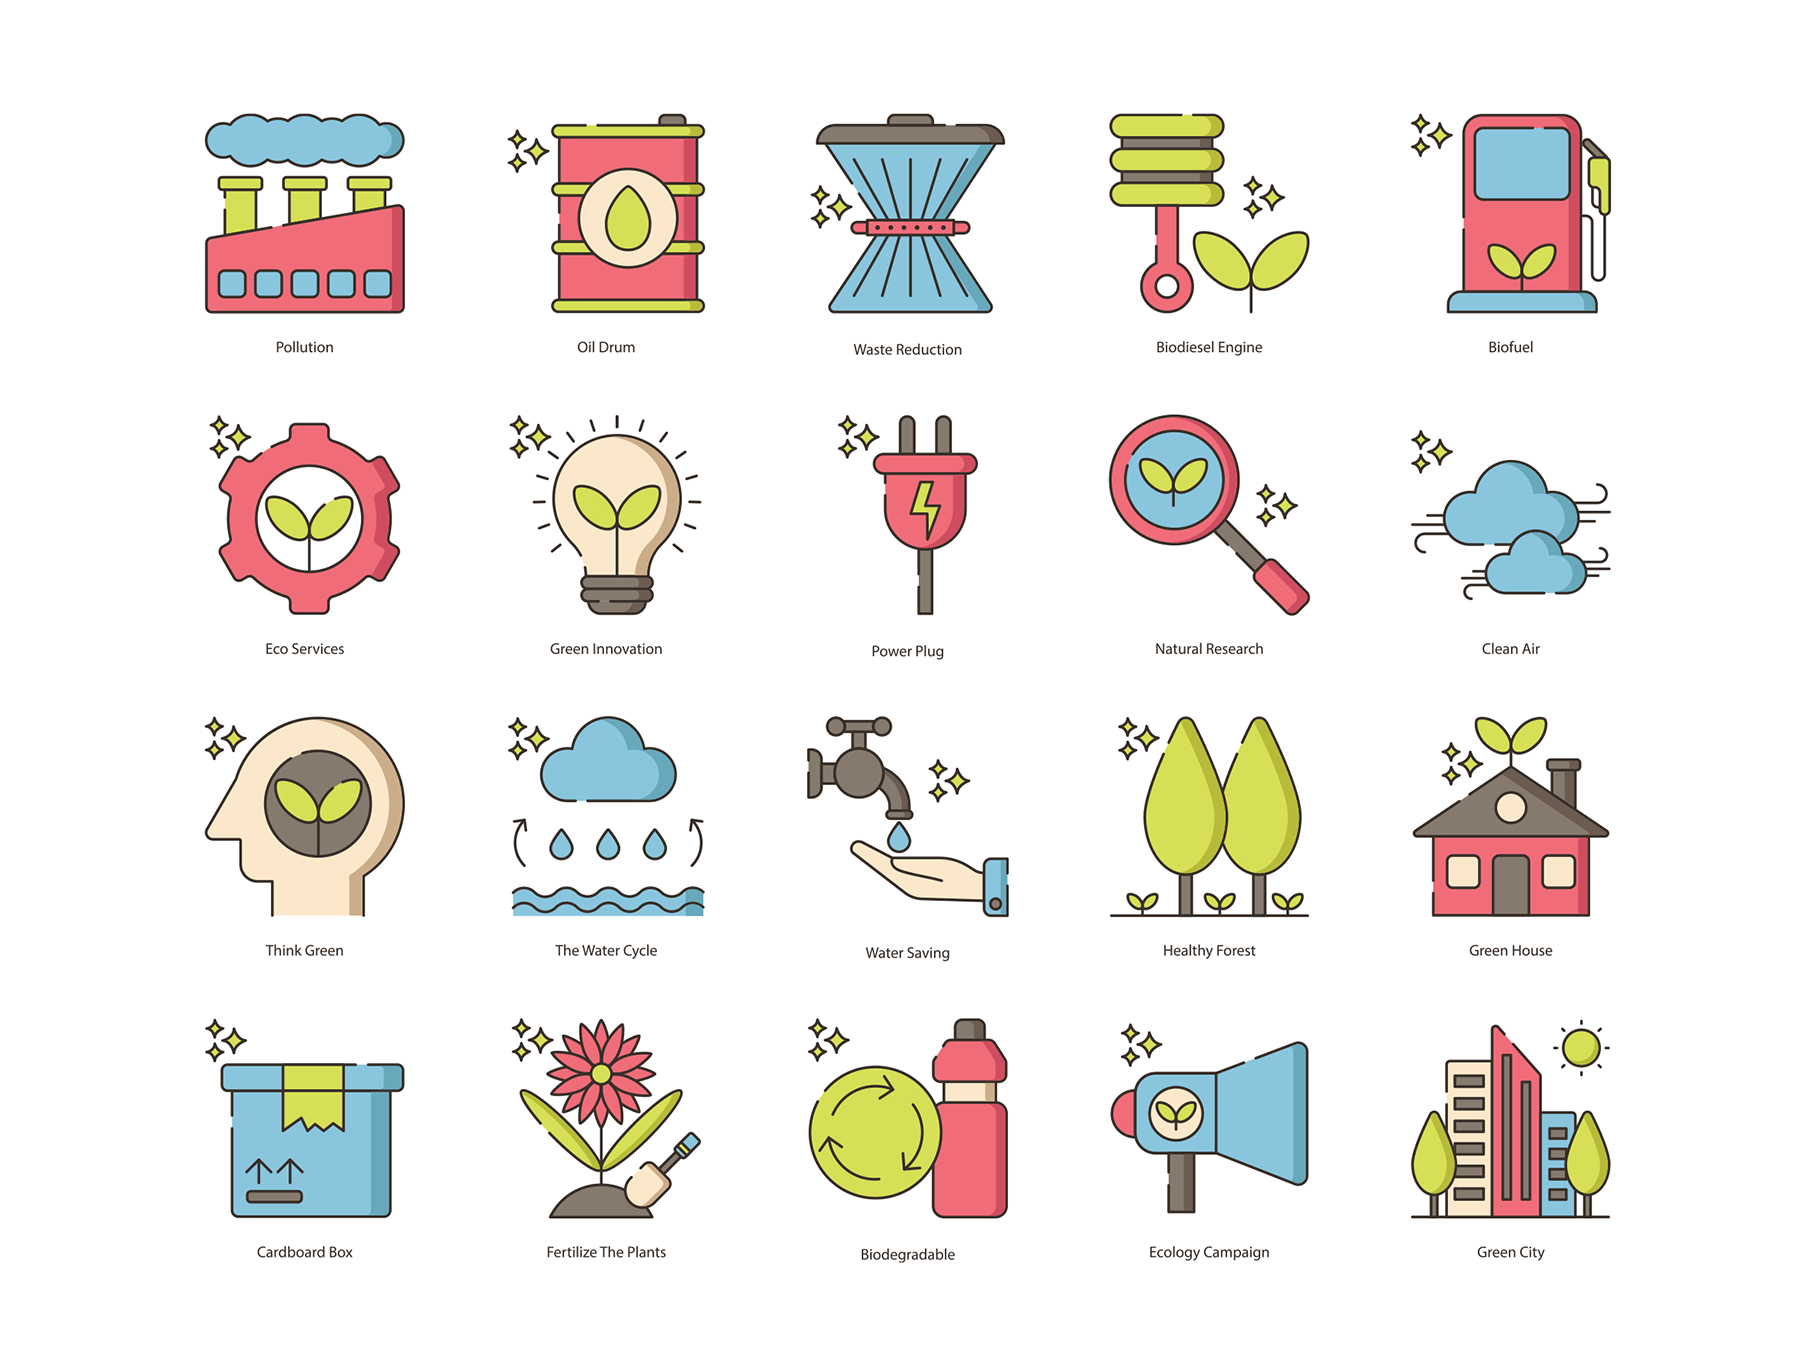 ecology-icons-ui8-detail-image-3_1544766186459.png